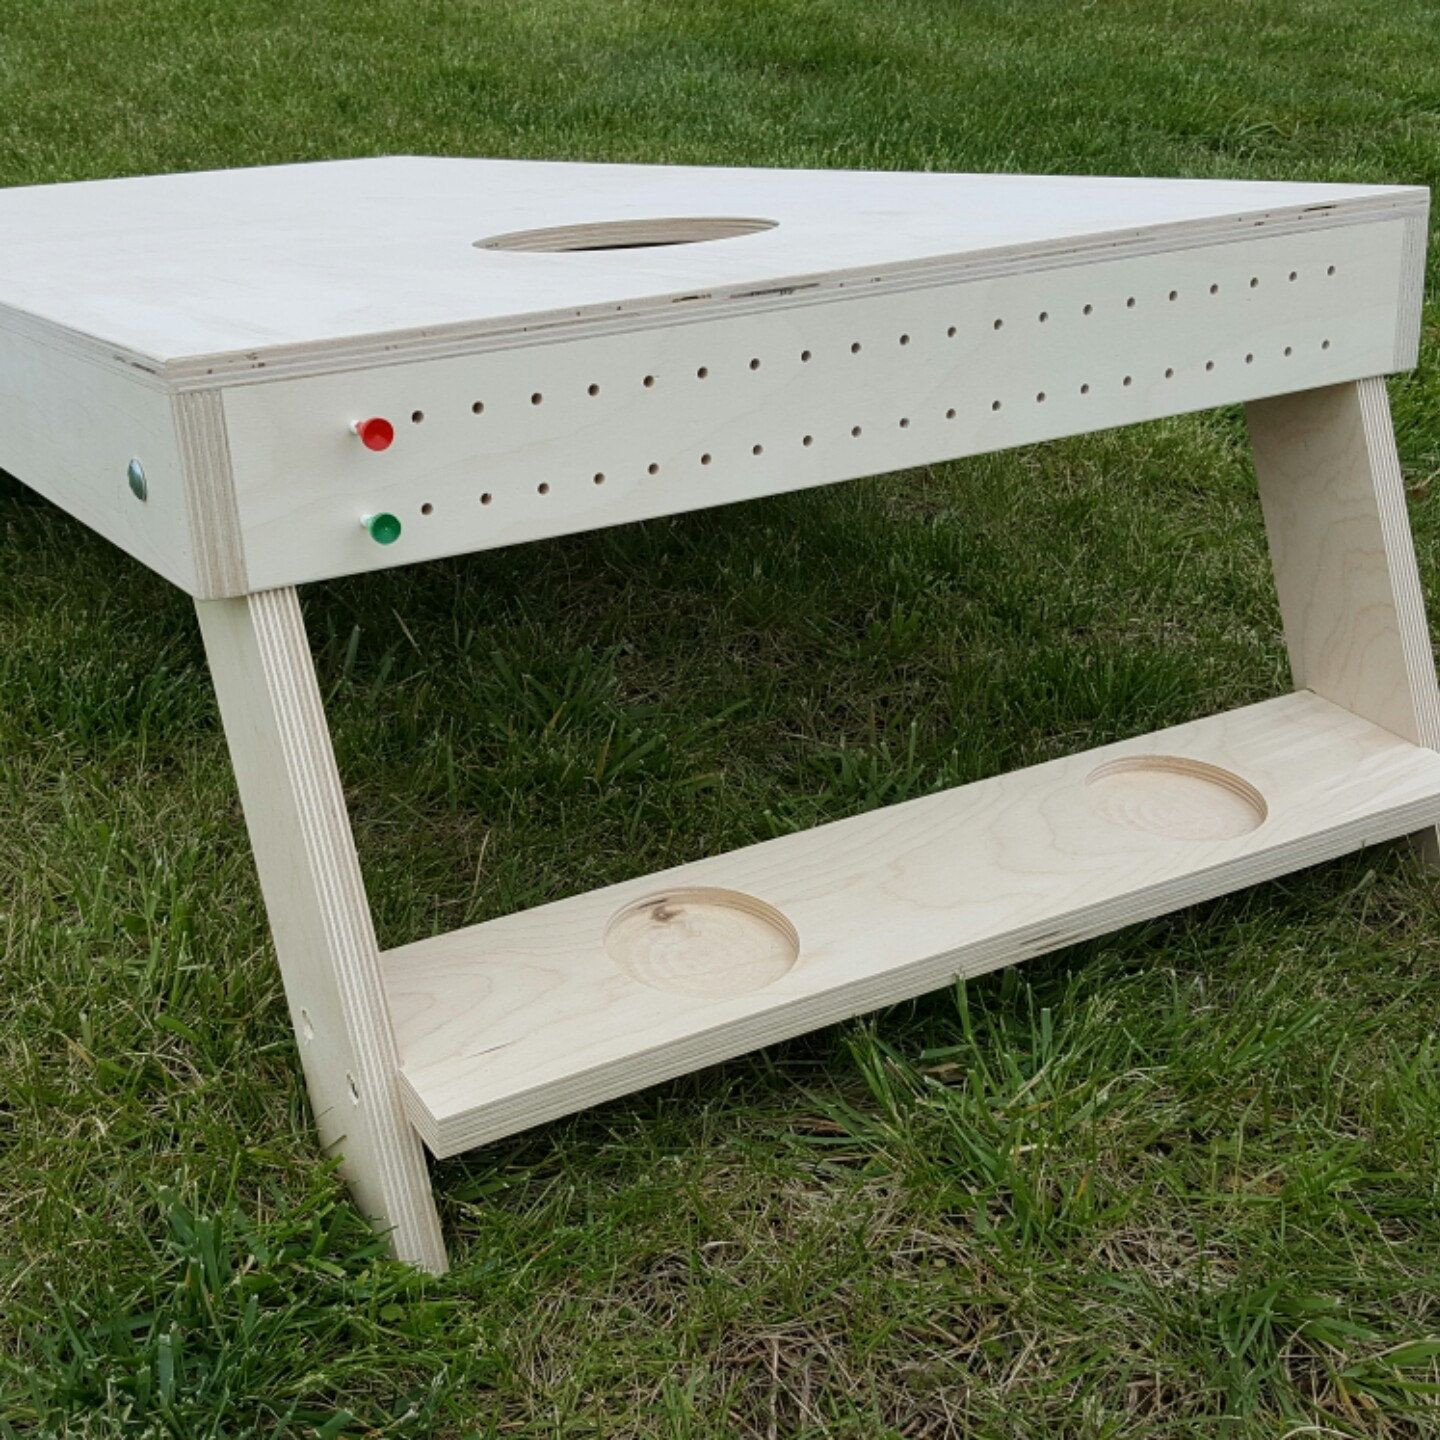 Best ideas about DIY Cornhole Plans . Save or Pin Working on making scoring pins and cup holders for our Now.